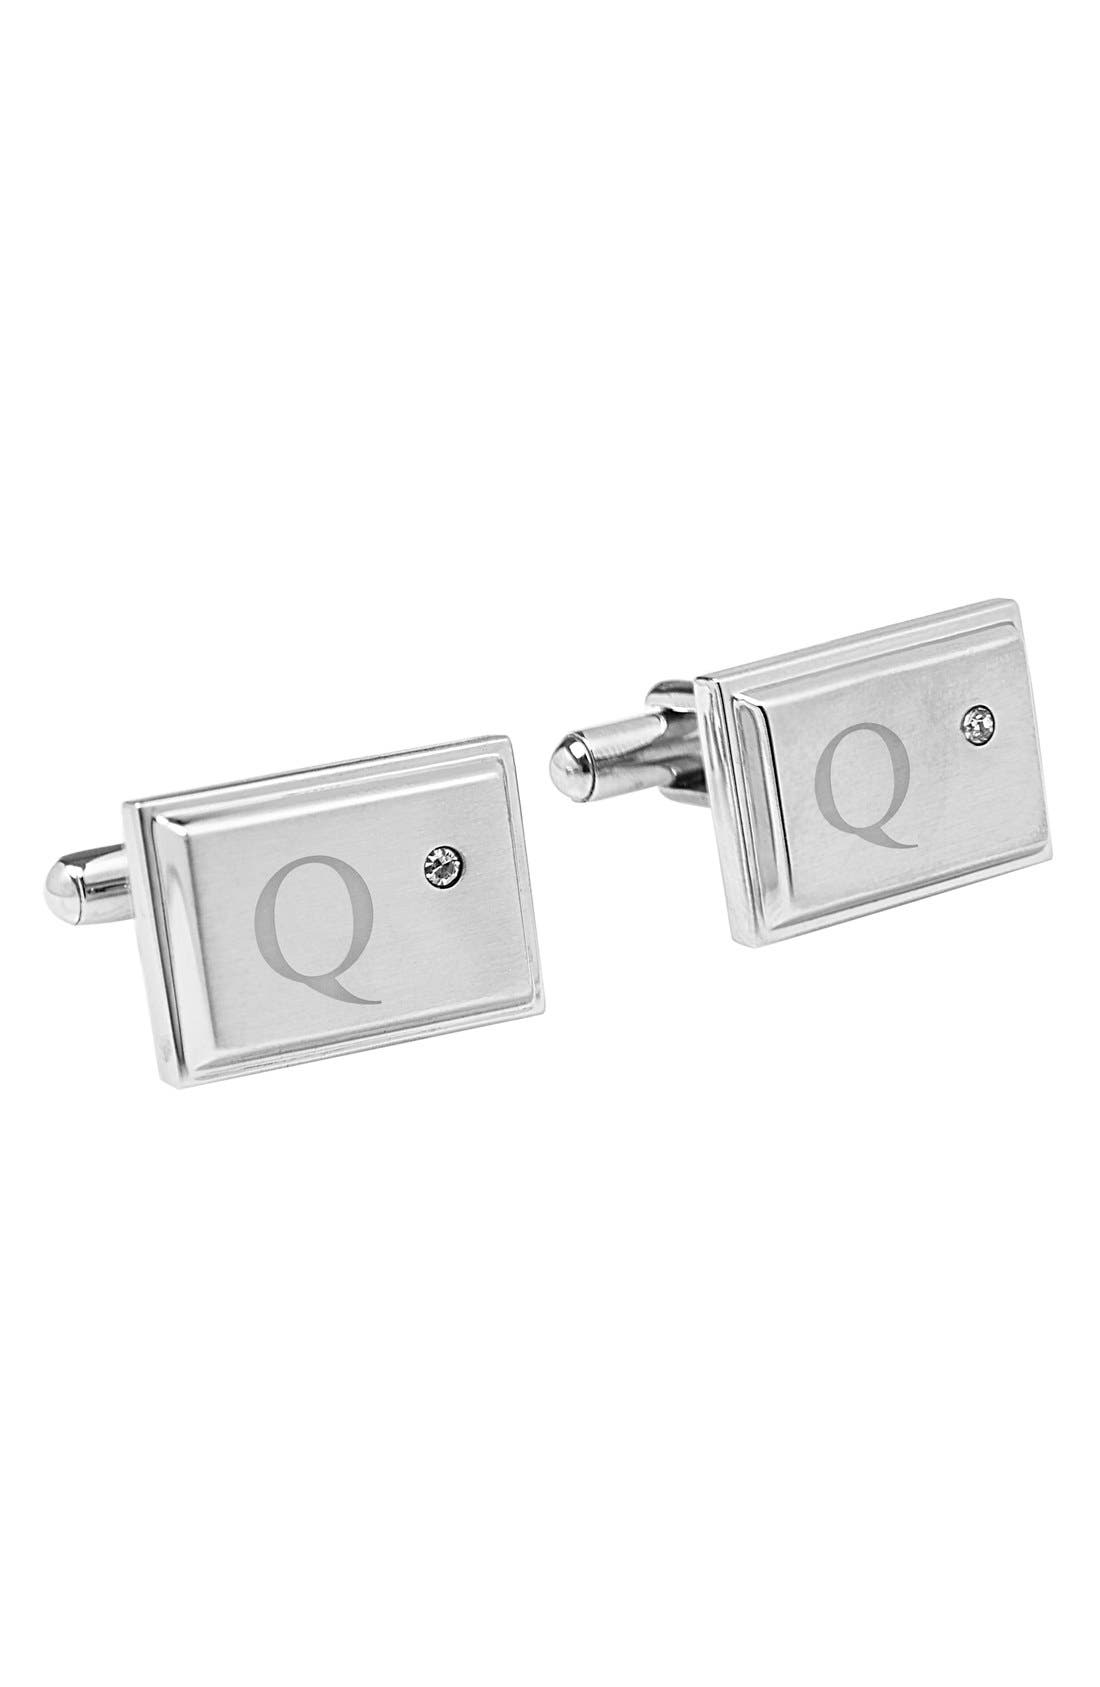 Main Image - Cathy's Concepts Monogram Cuff Links